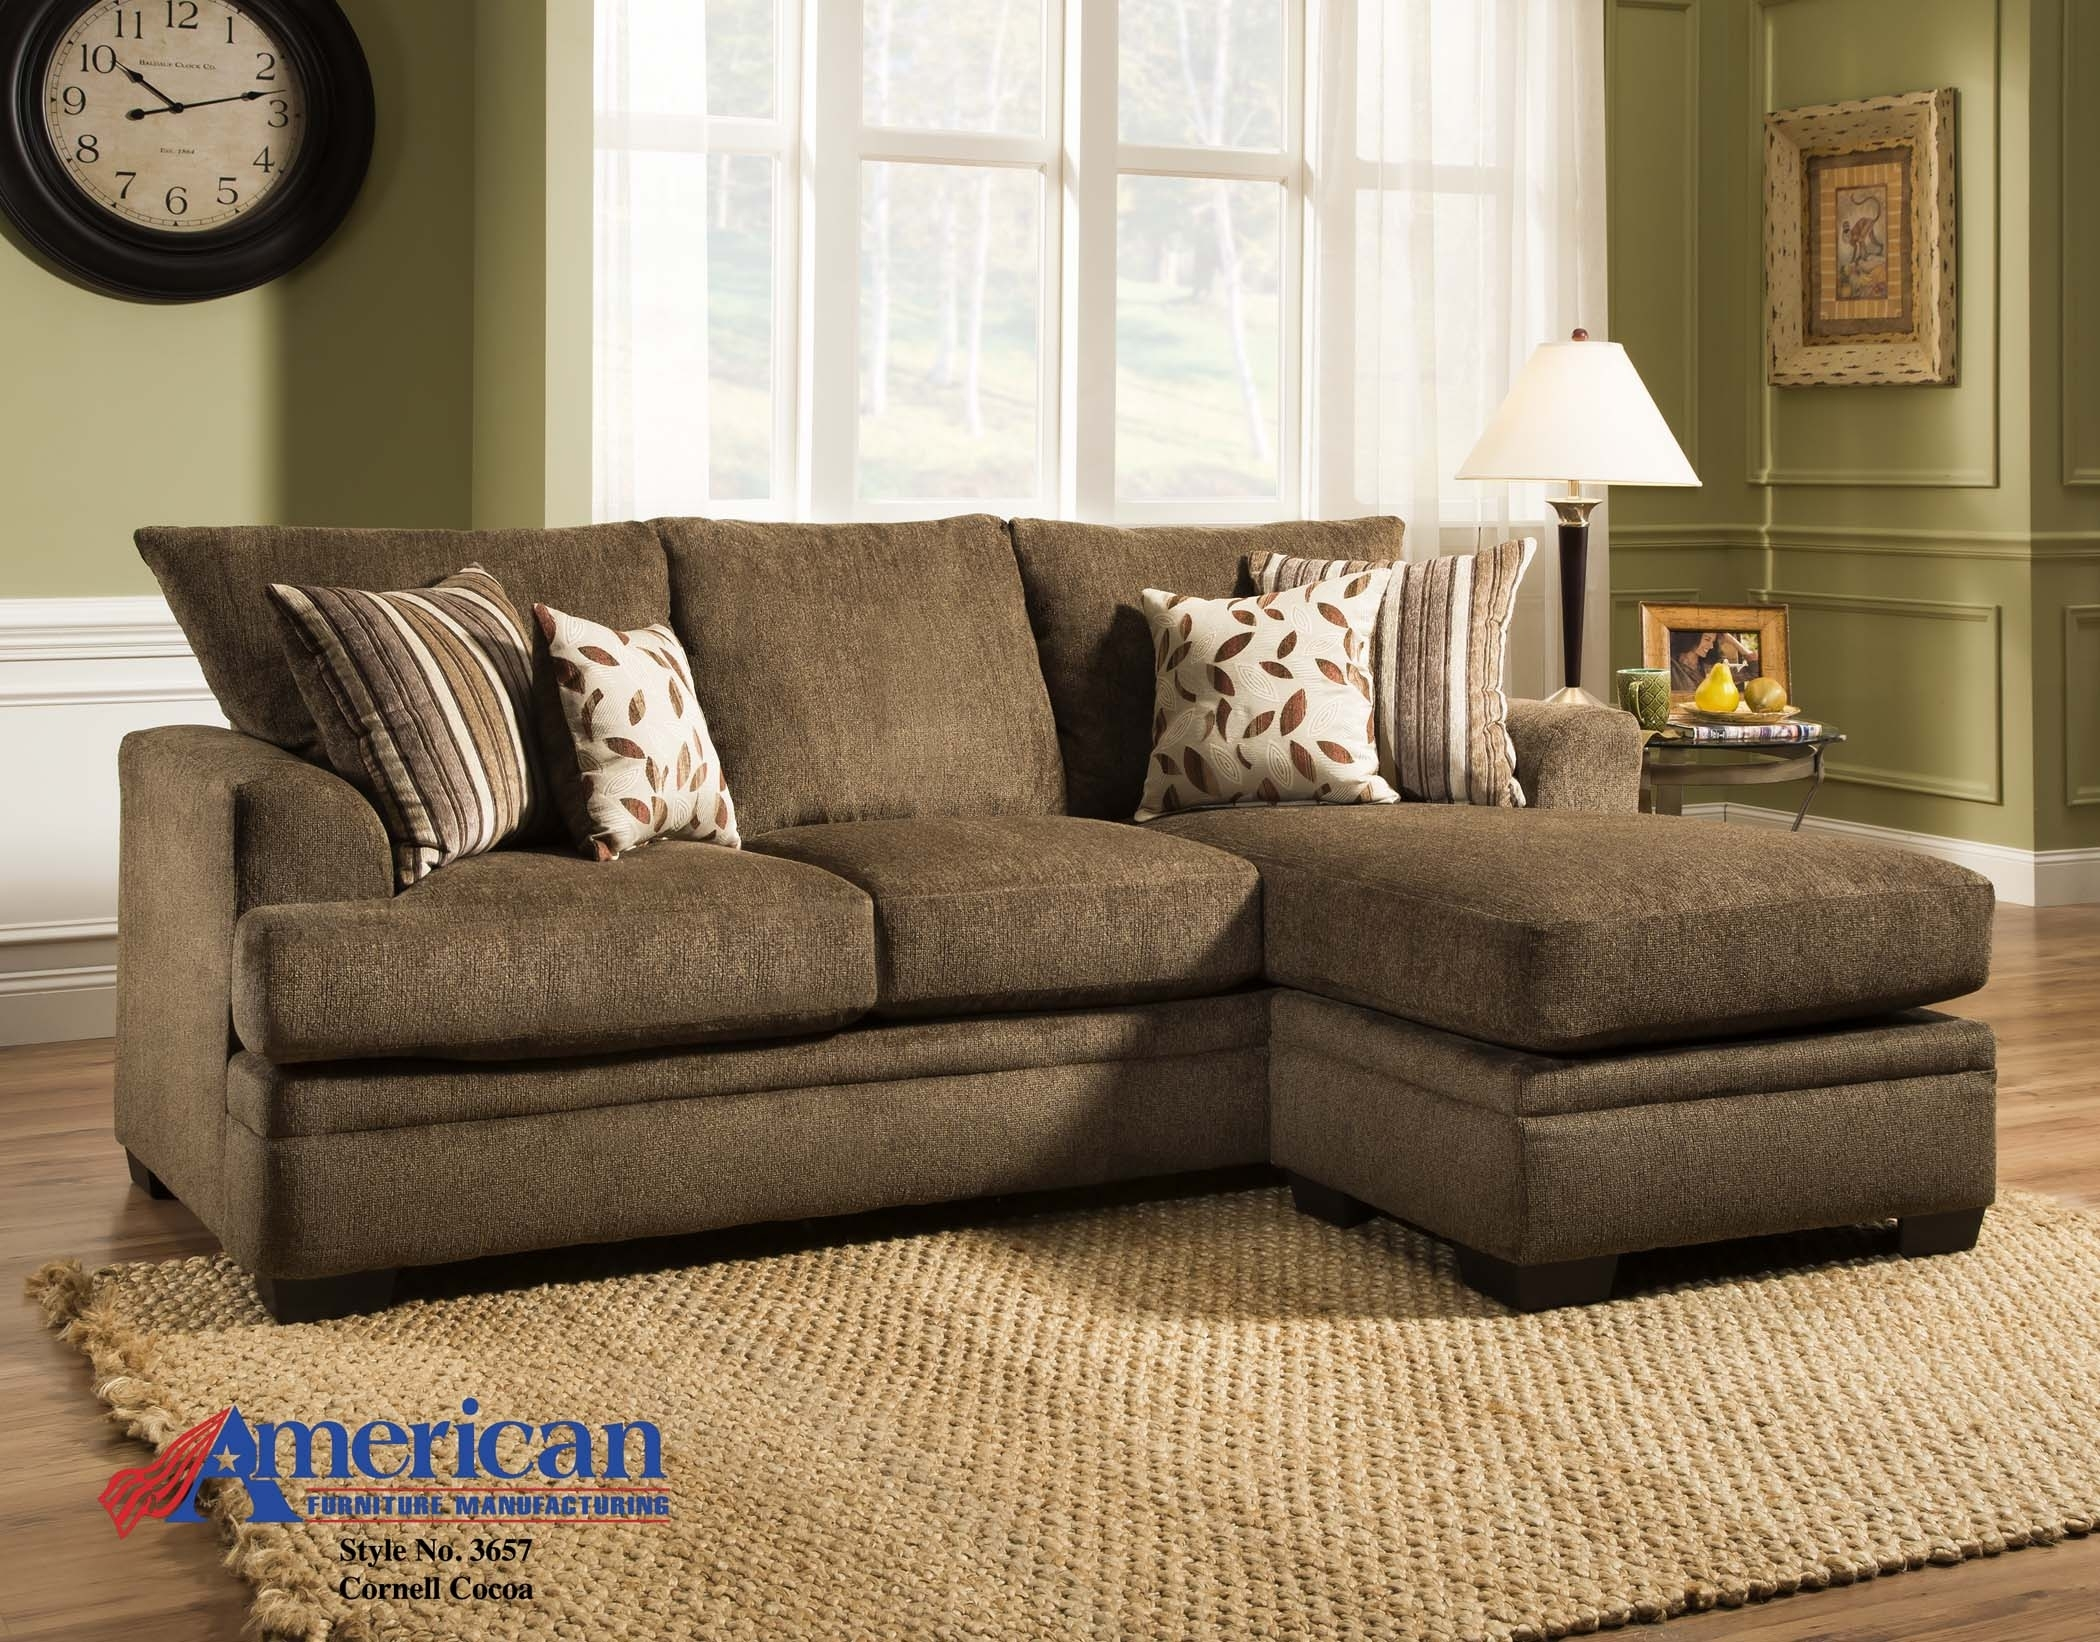 Living Room – Crazy Joe's Best Deal Furniture Intended For Janesville Wi Sectional Sofas (Image 7 of 10)